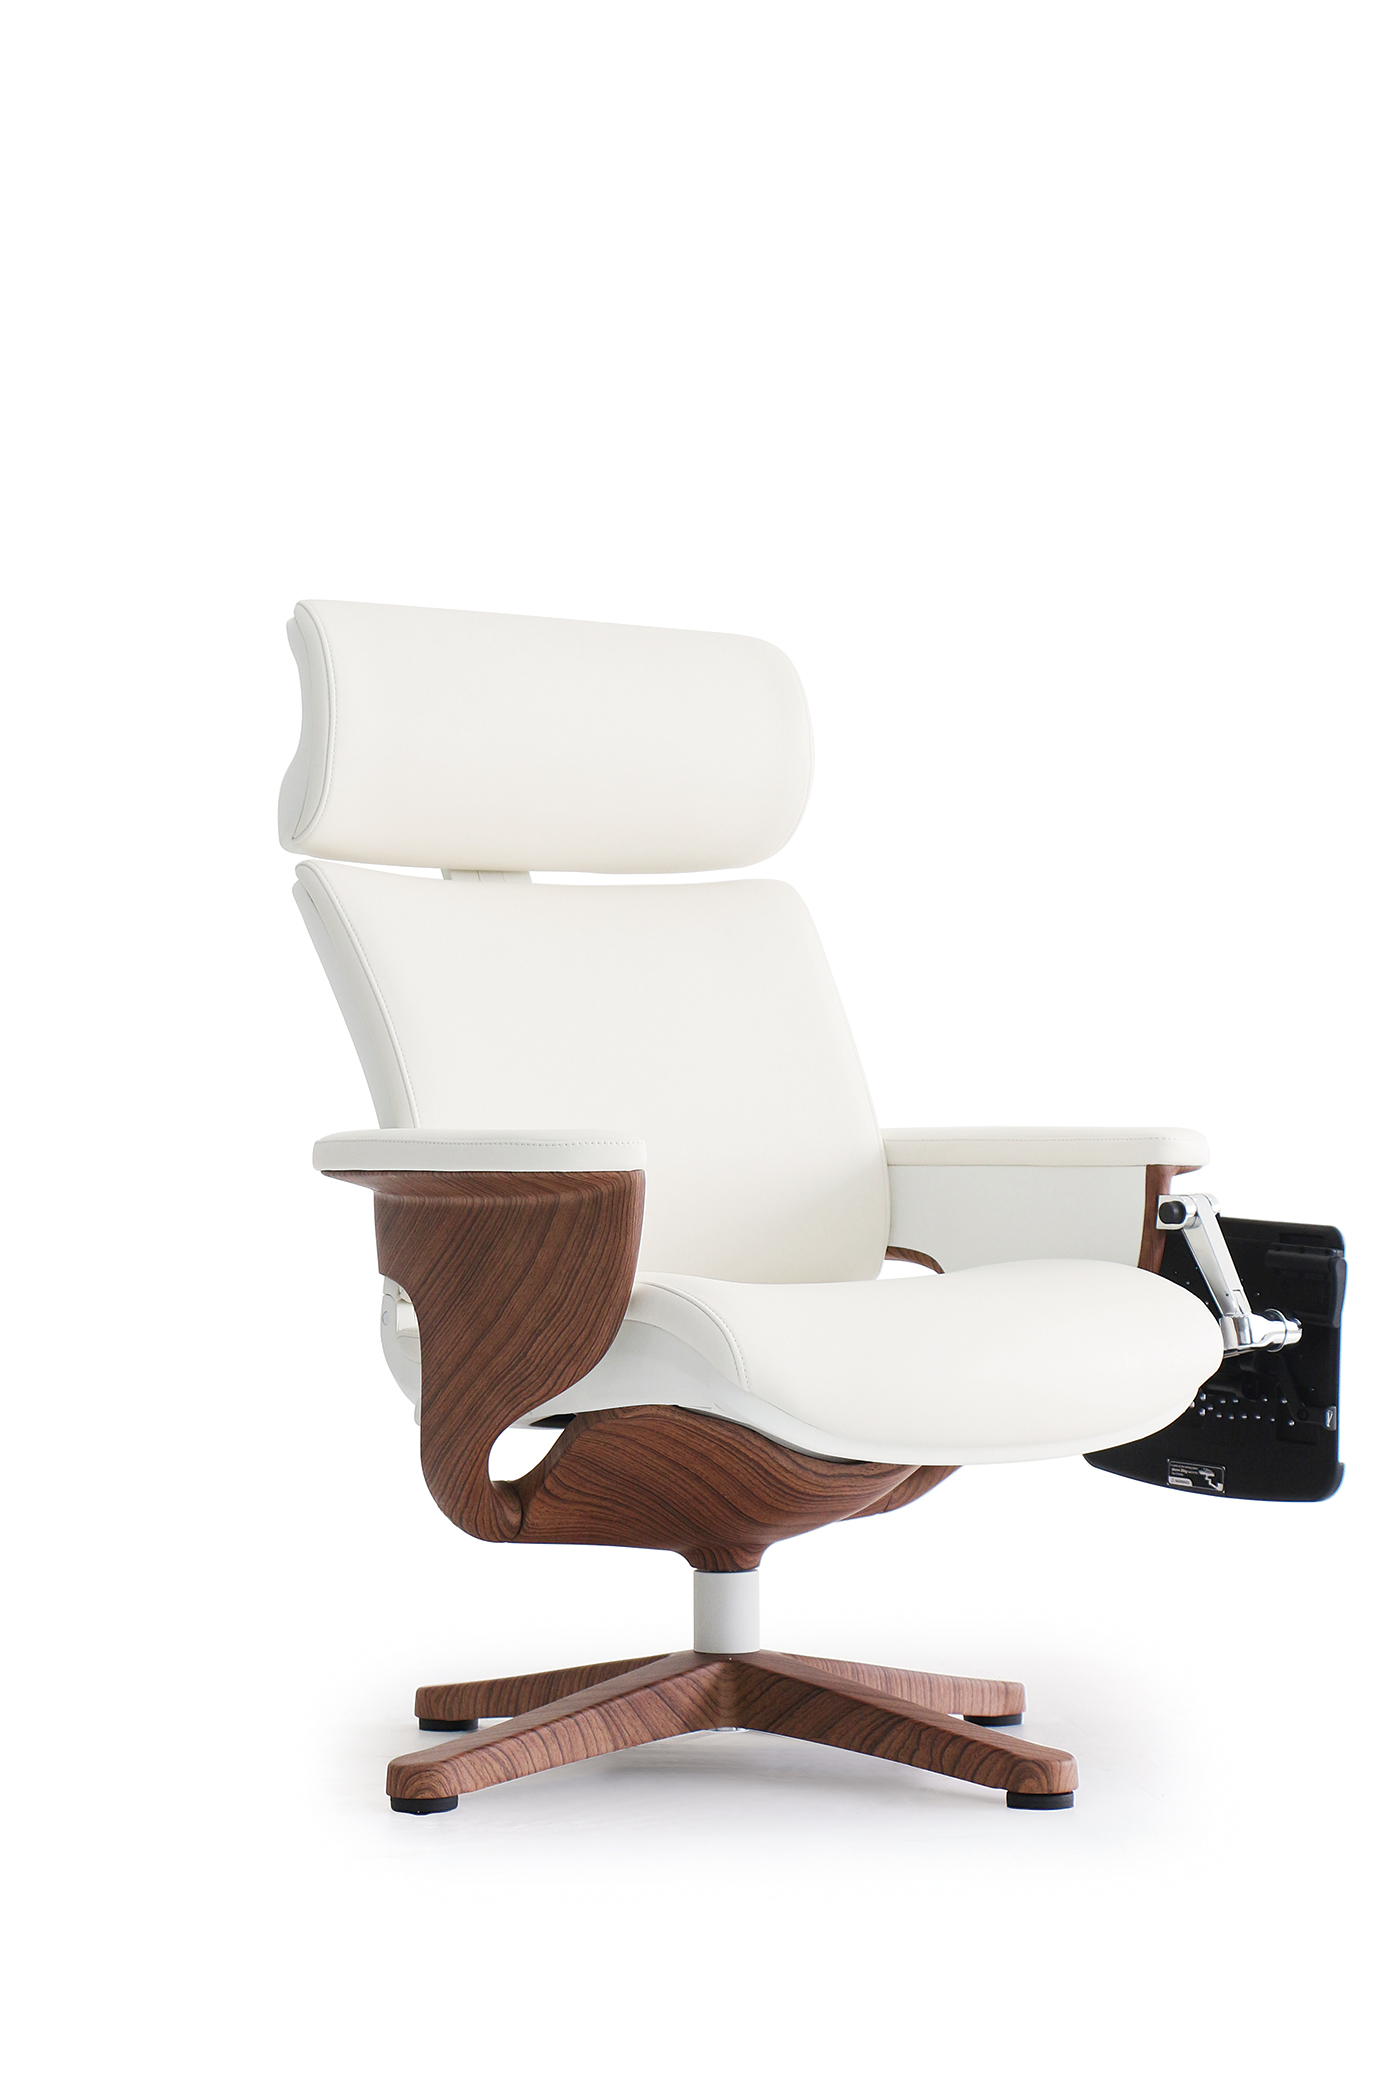 Eurotech Nuvem lounge leather seating - white